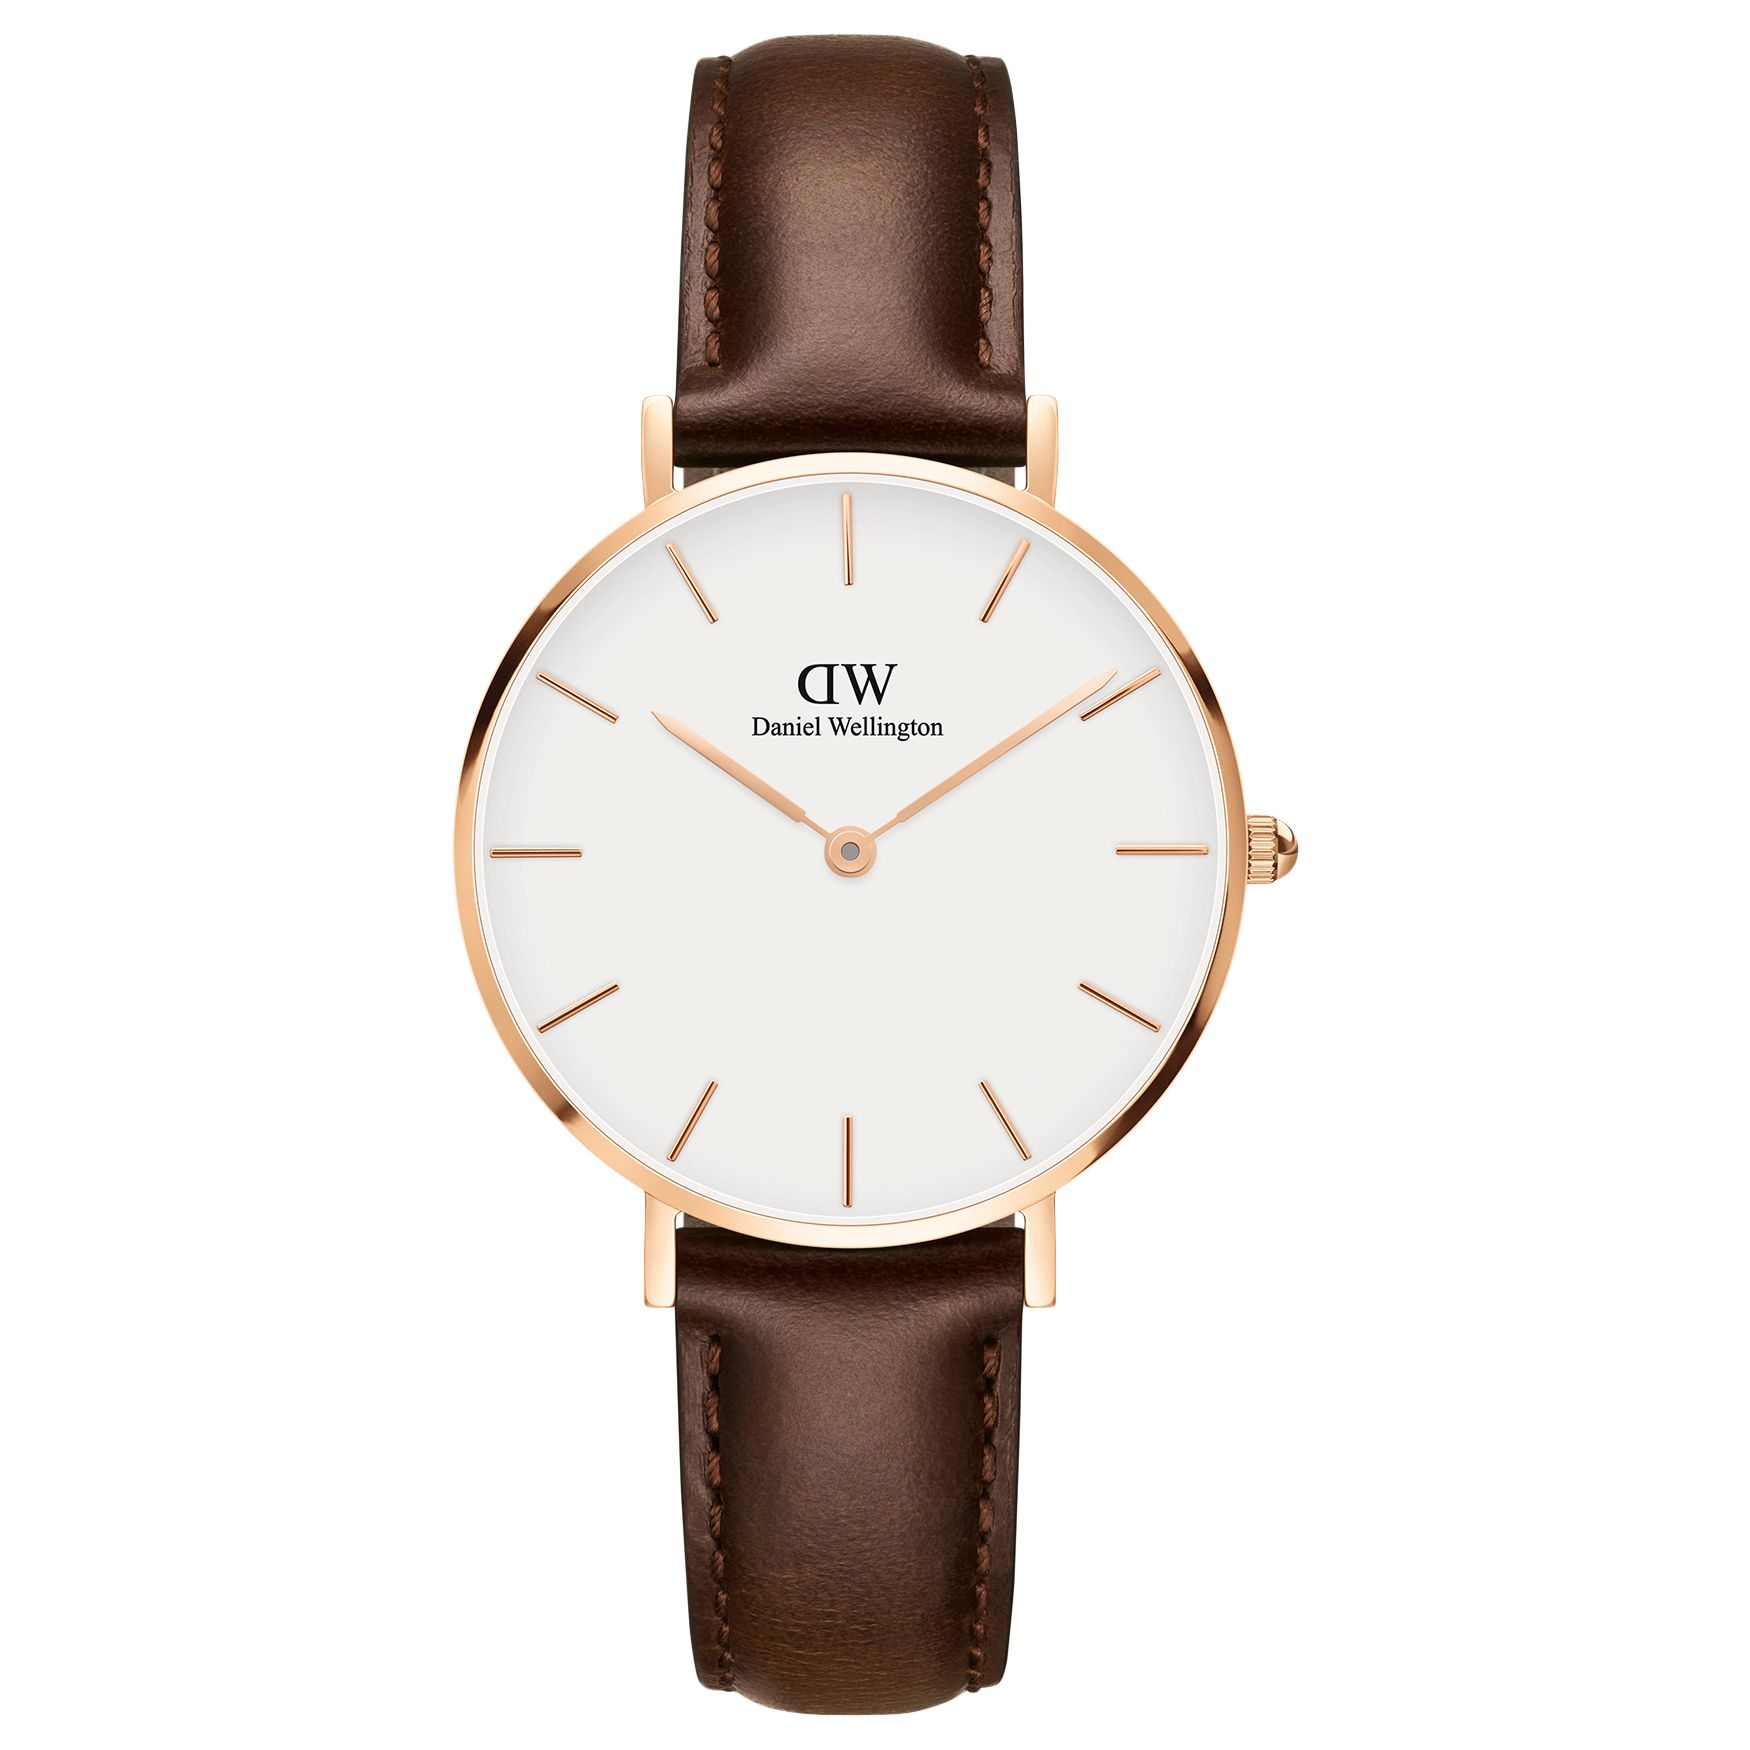 Daniel Wellington Daniel Wellington Women's 32mm Petite Leather Strap Watch